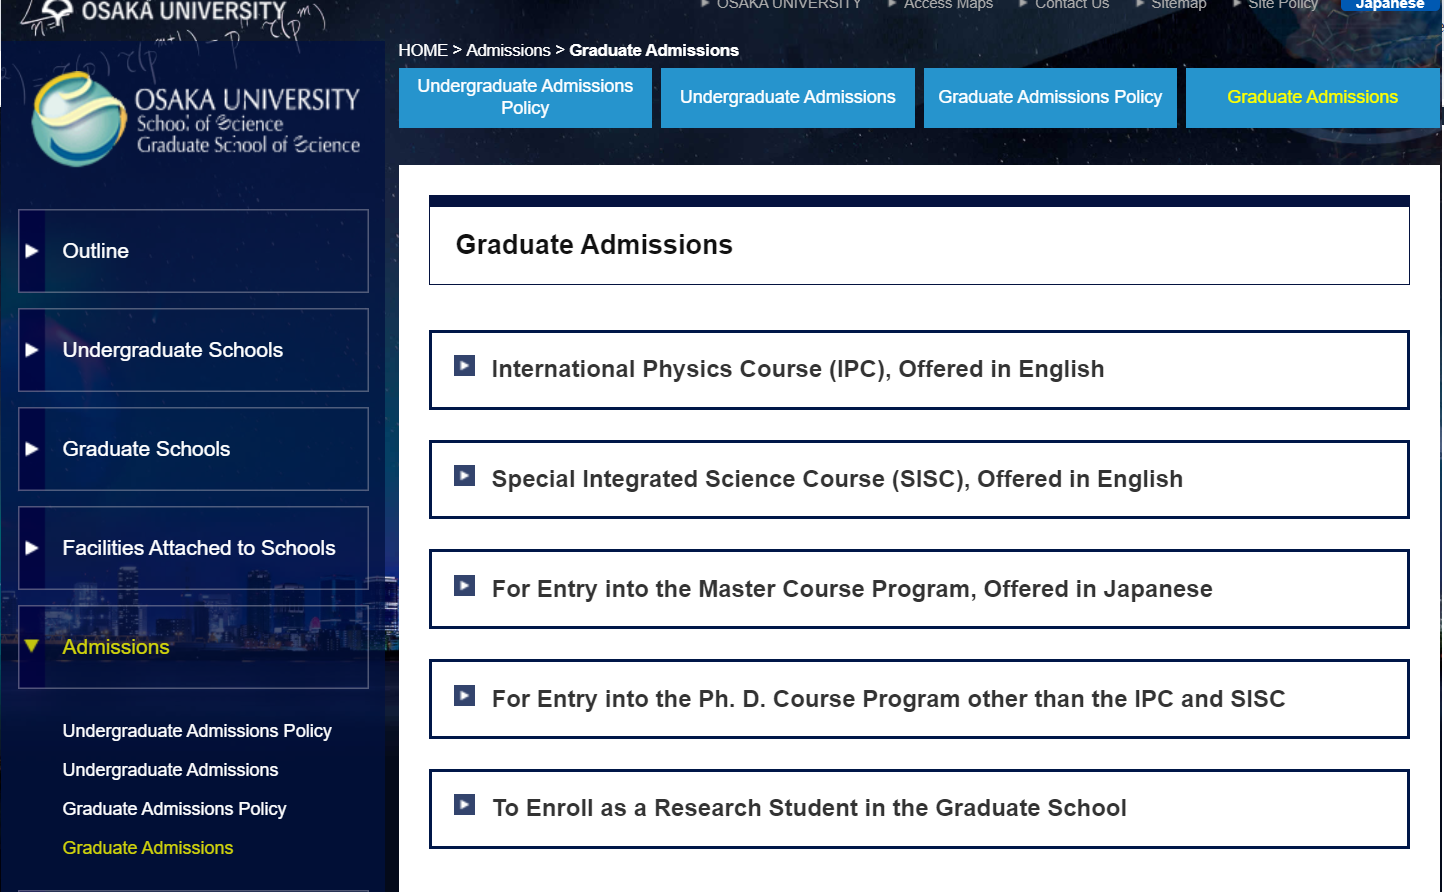 The Application Guidelines for the Master's/Ph.D.